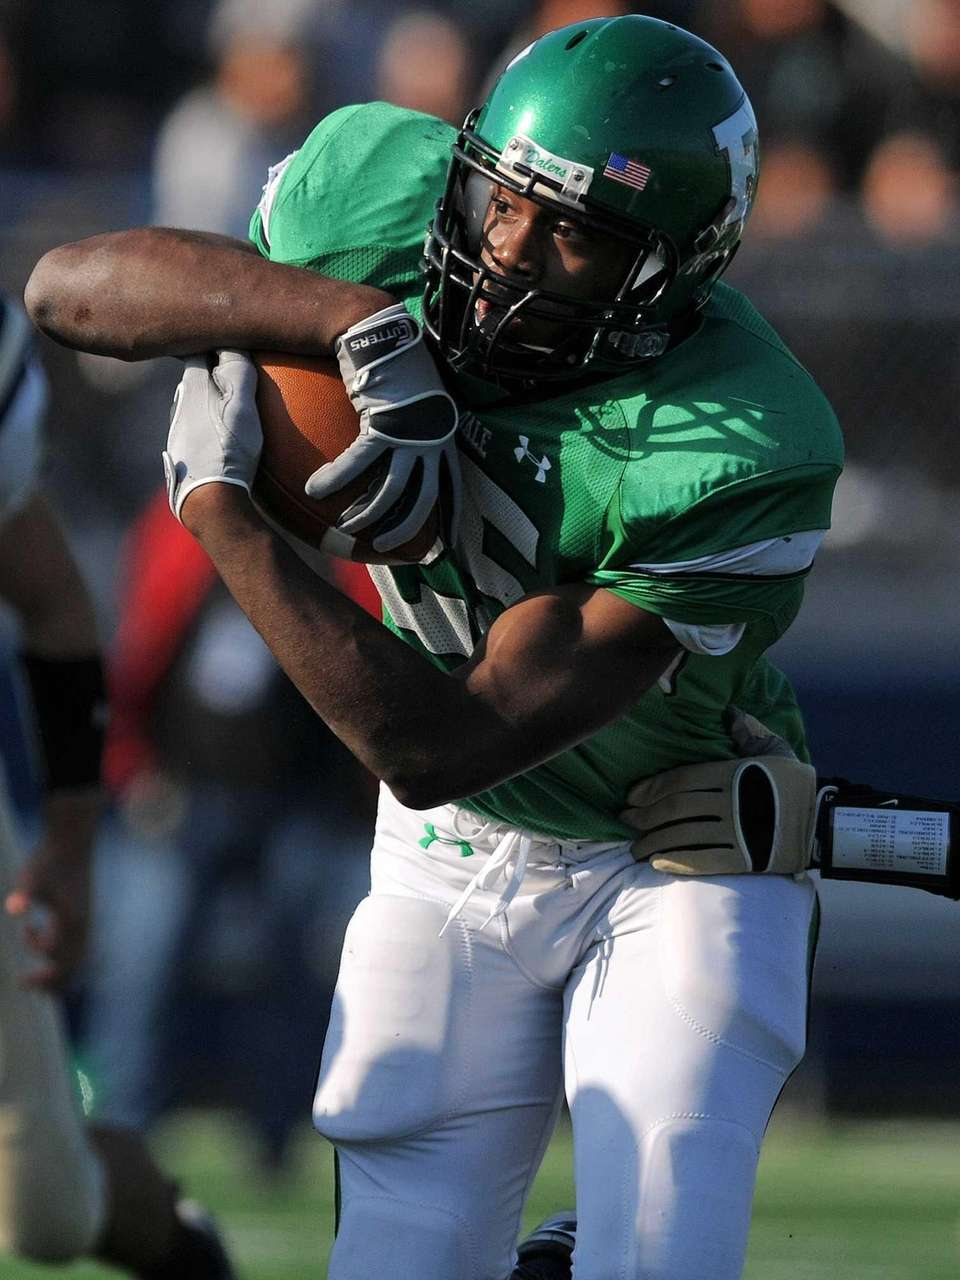 Farmingdale running back Kevin Petit-Frere protects the ball